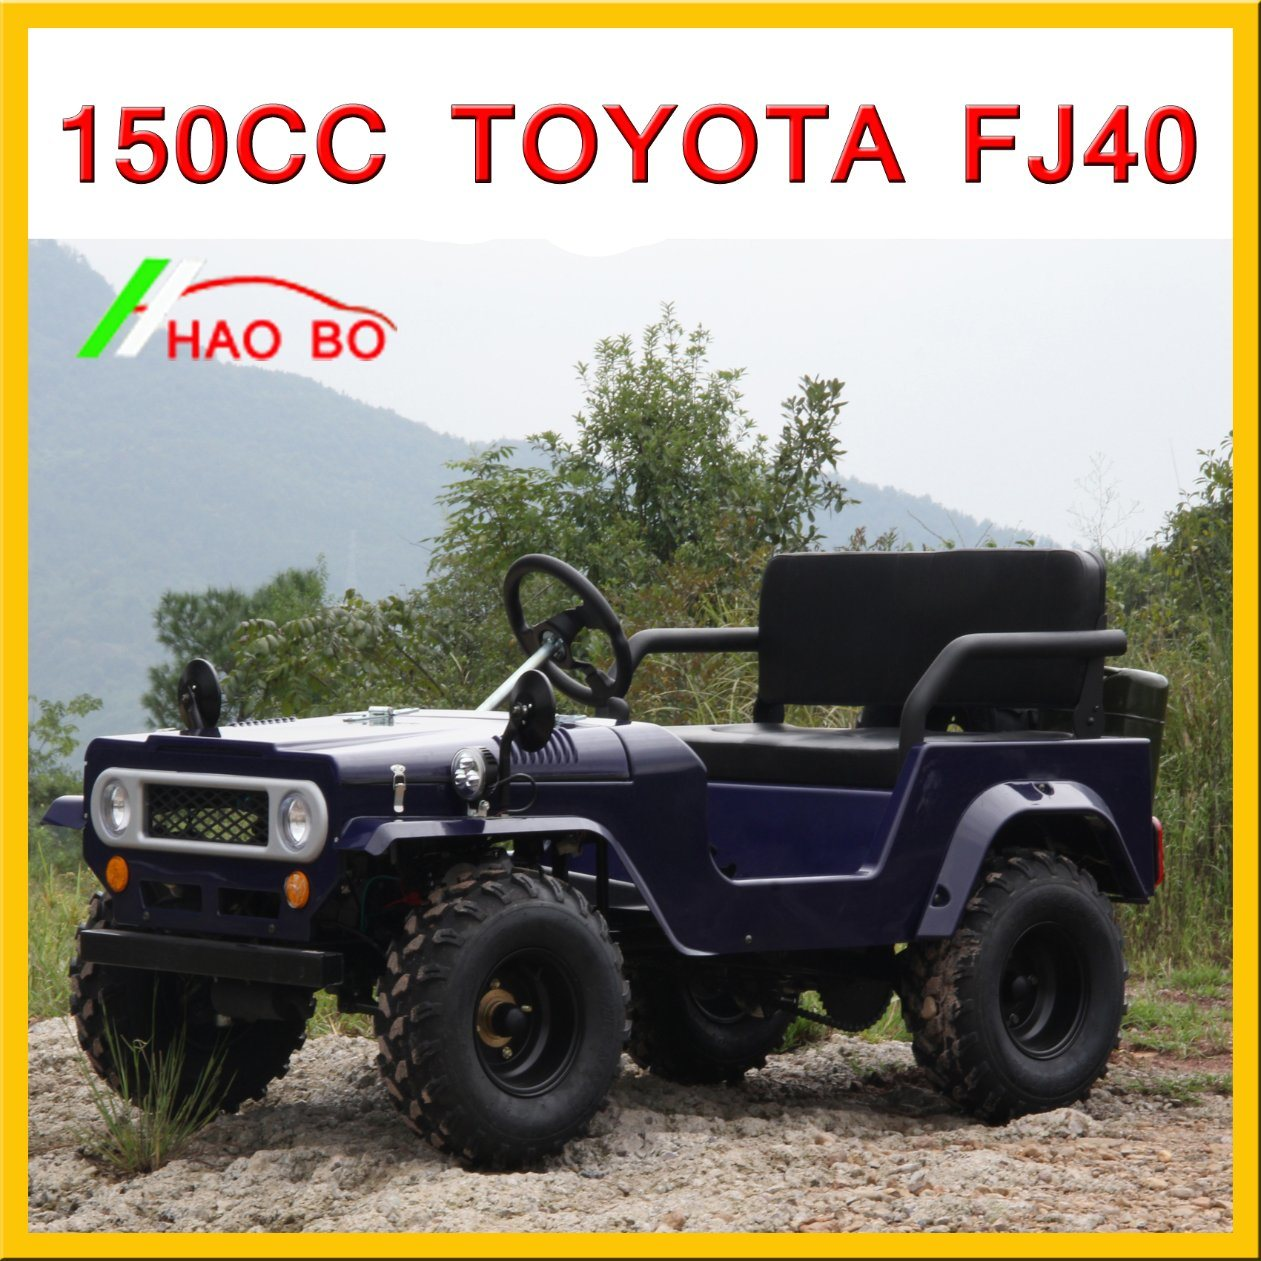 Toyota Land Cruiser 200cc for Right Hand Driving